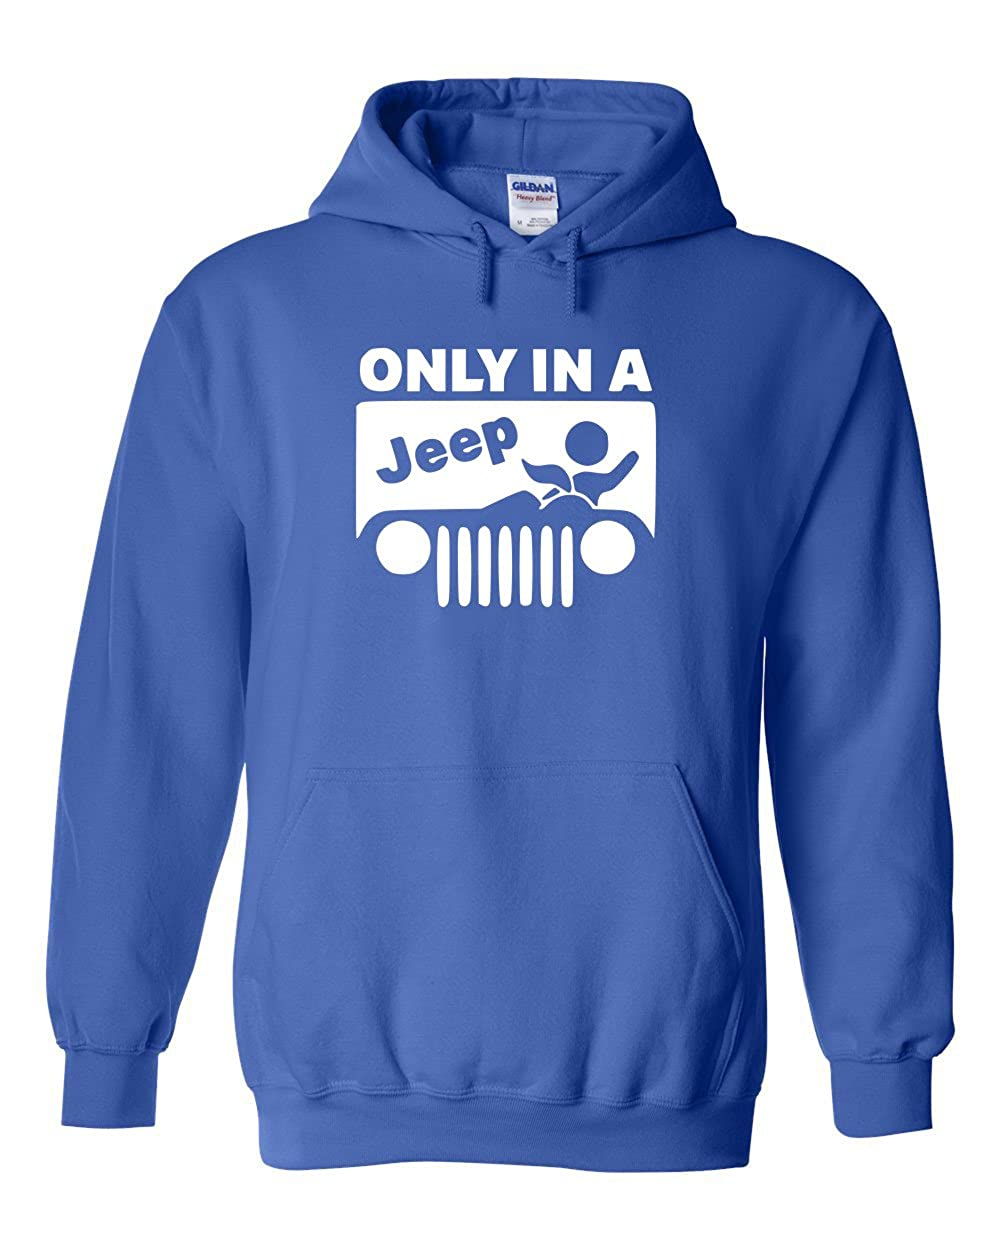 Karma t shirts Only in A Jeep Jeep Lovers White Design Womens Hoodies